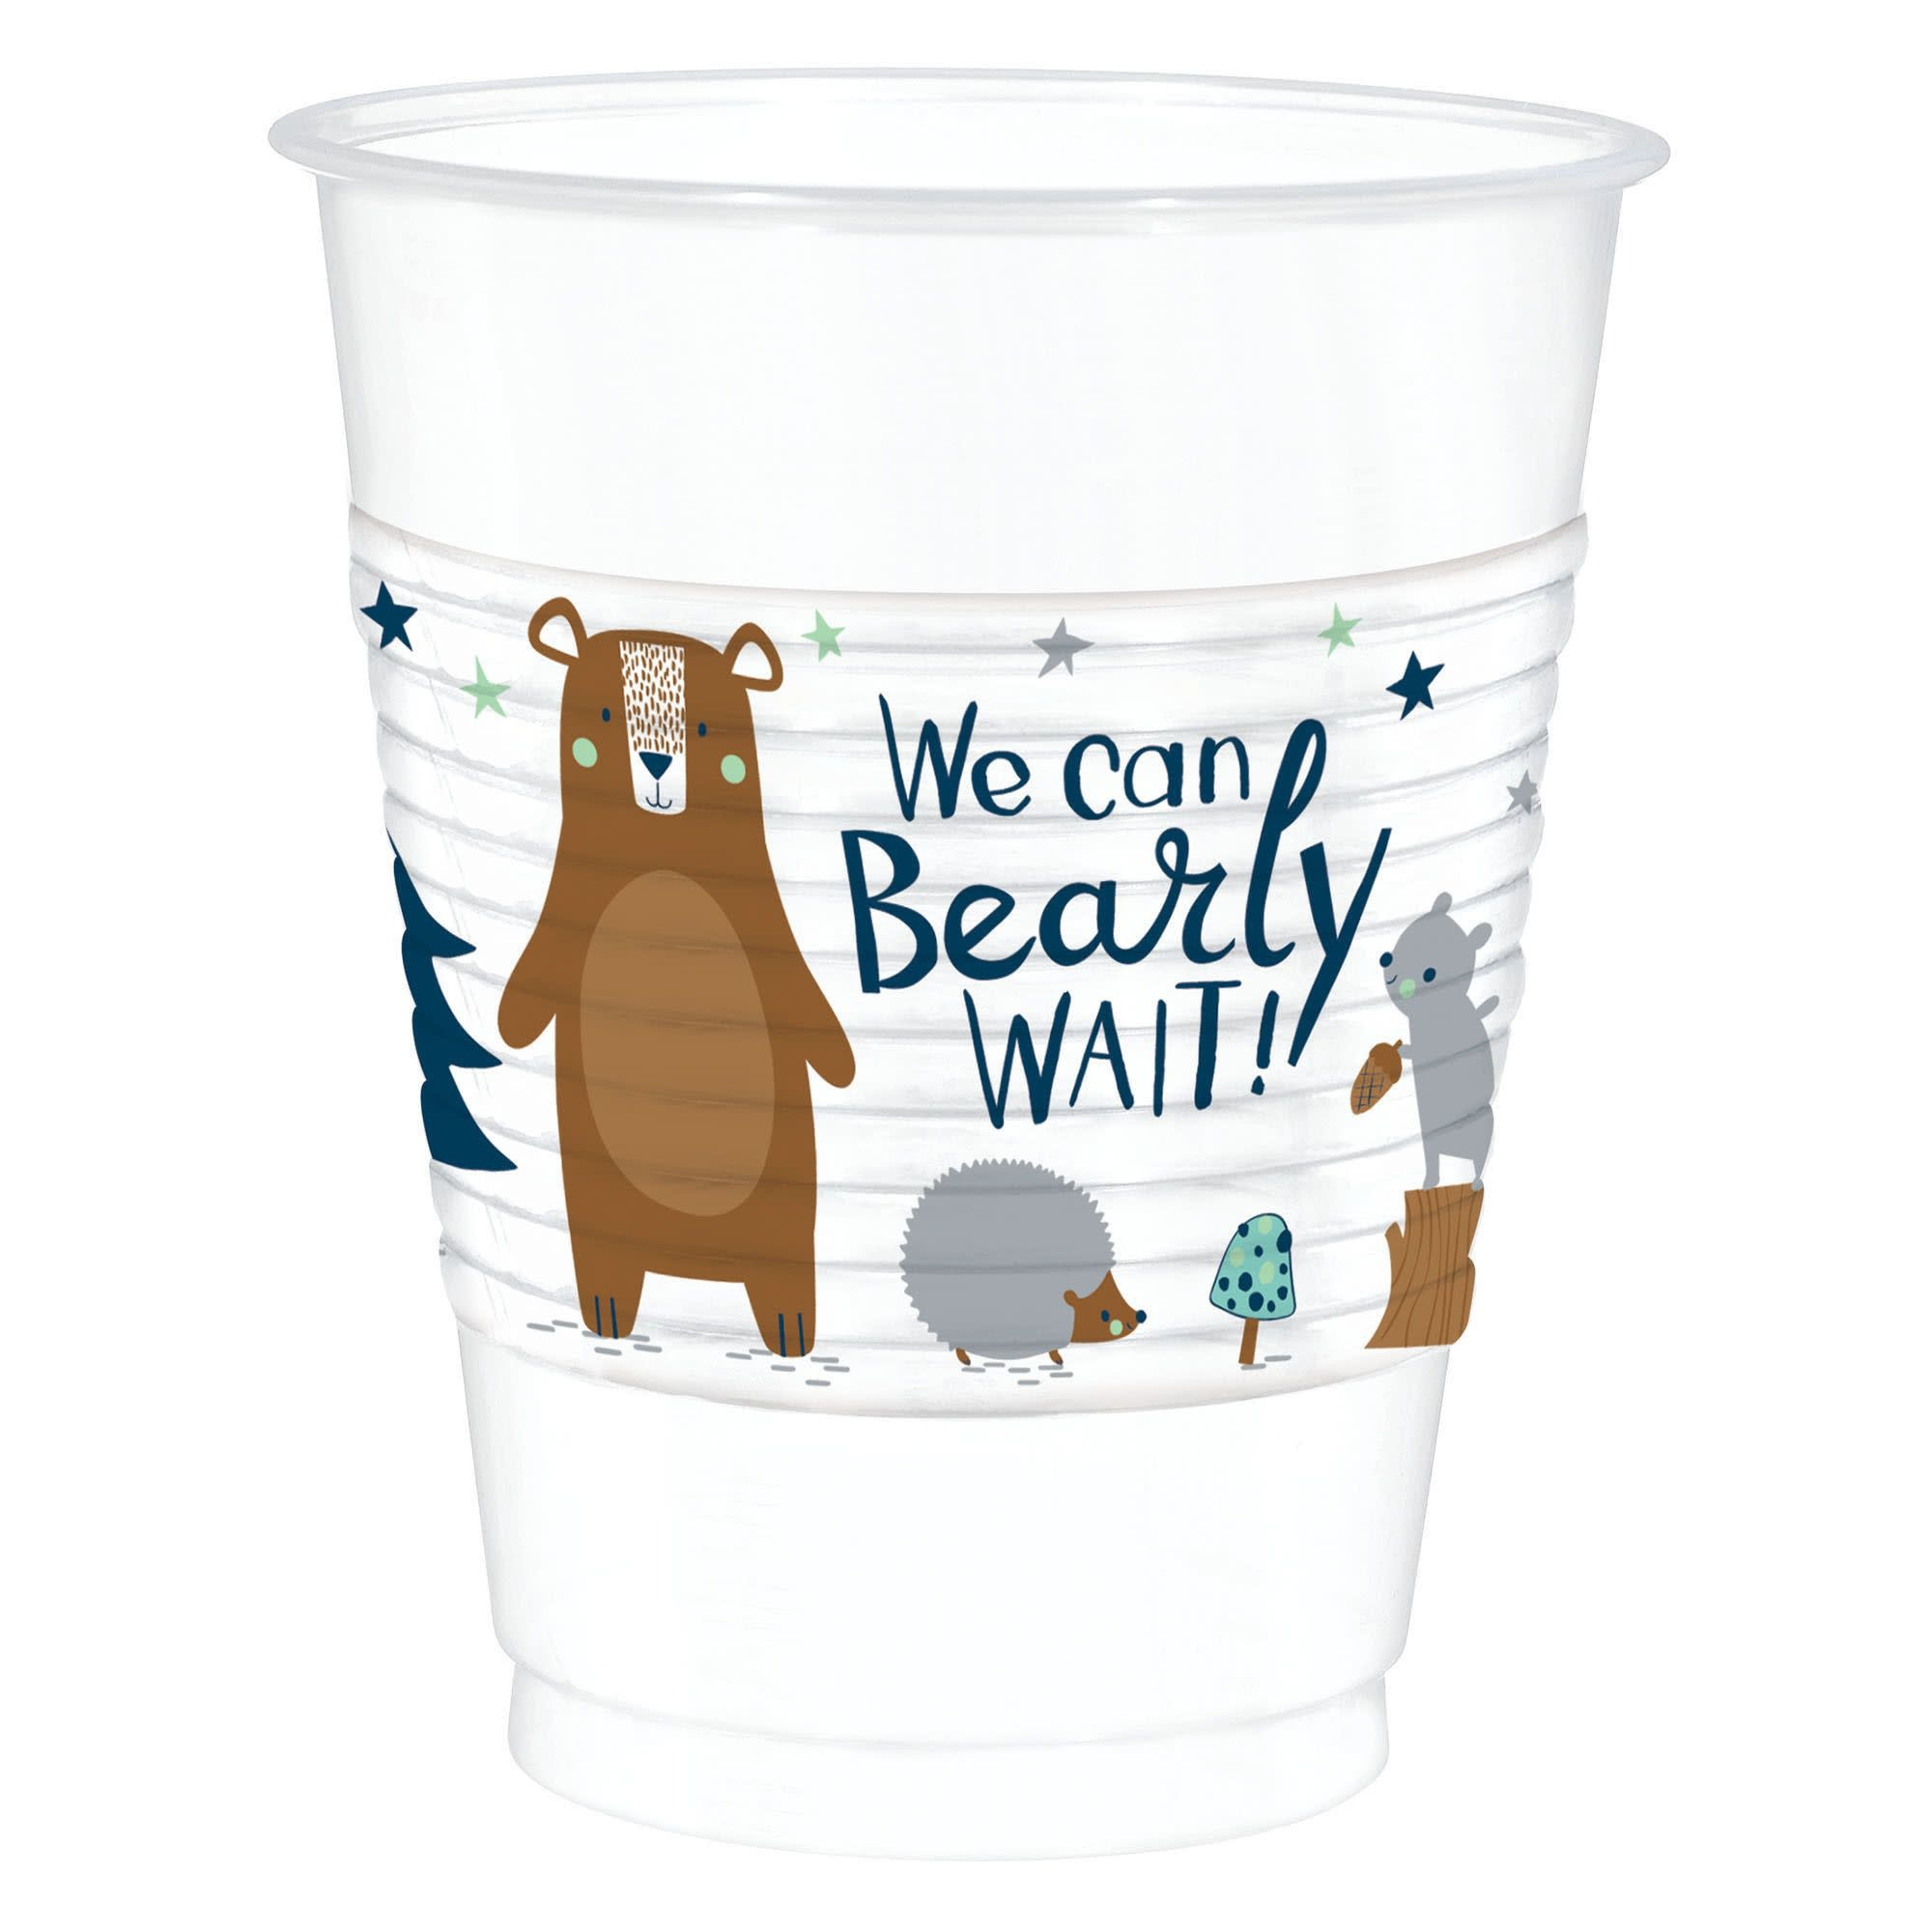 Bear-Ly Wait Plastic Cups- 25 Count